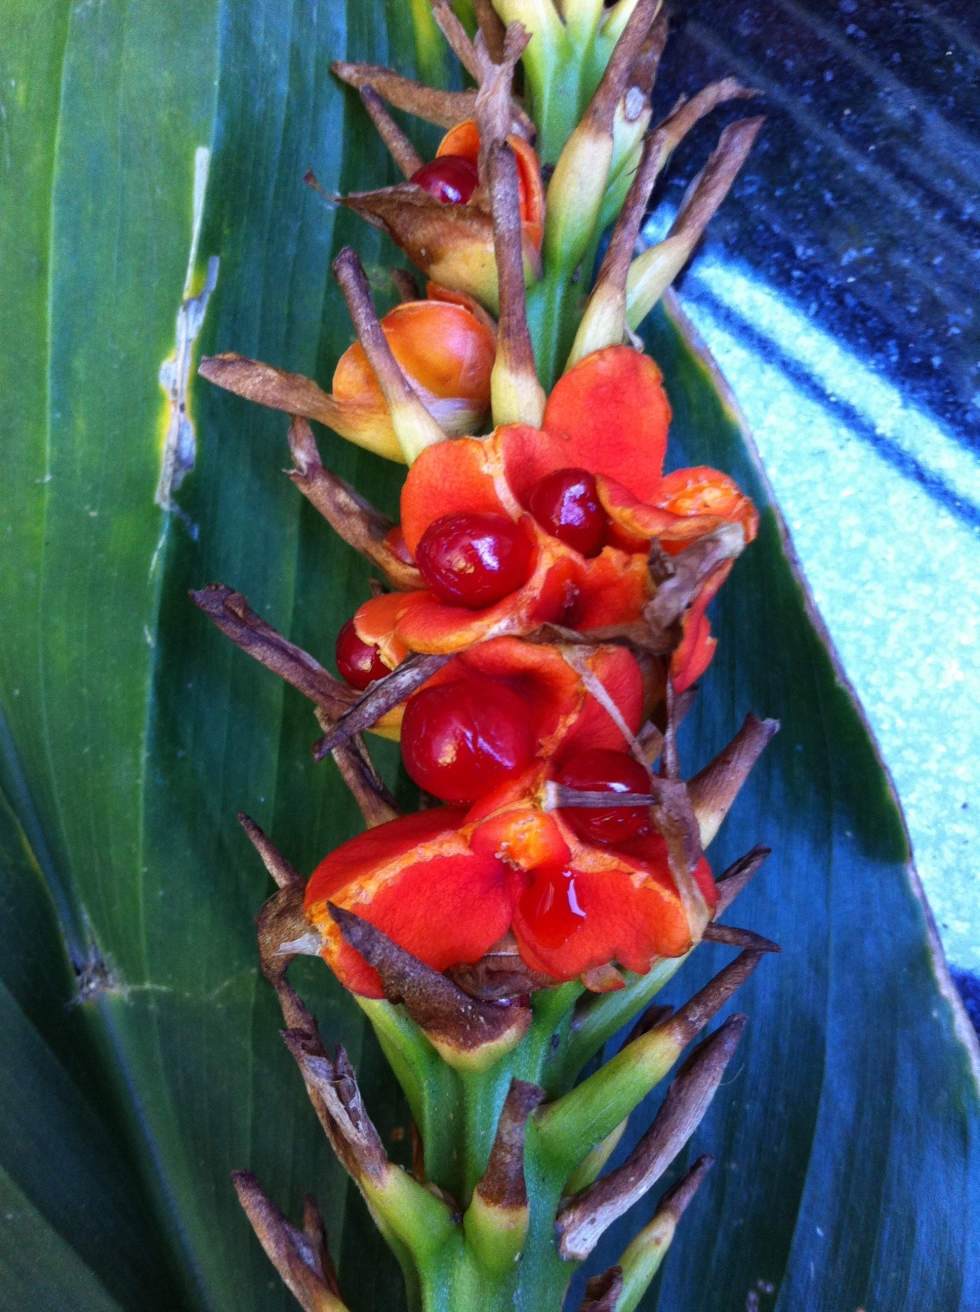 Seeds of Hedychium 'Stephen', November 2013